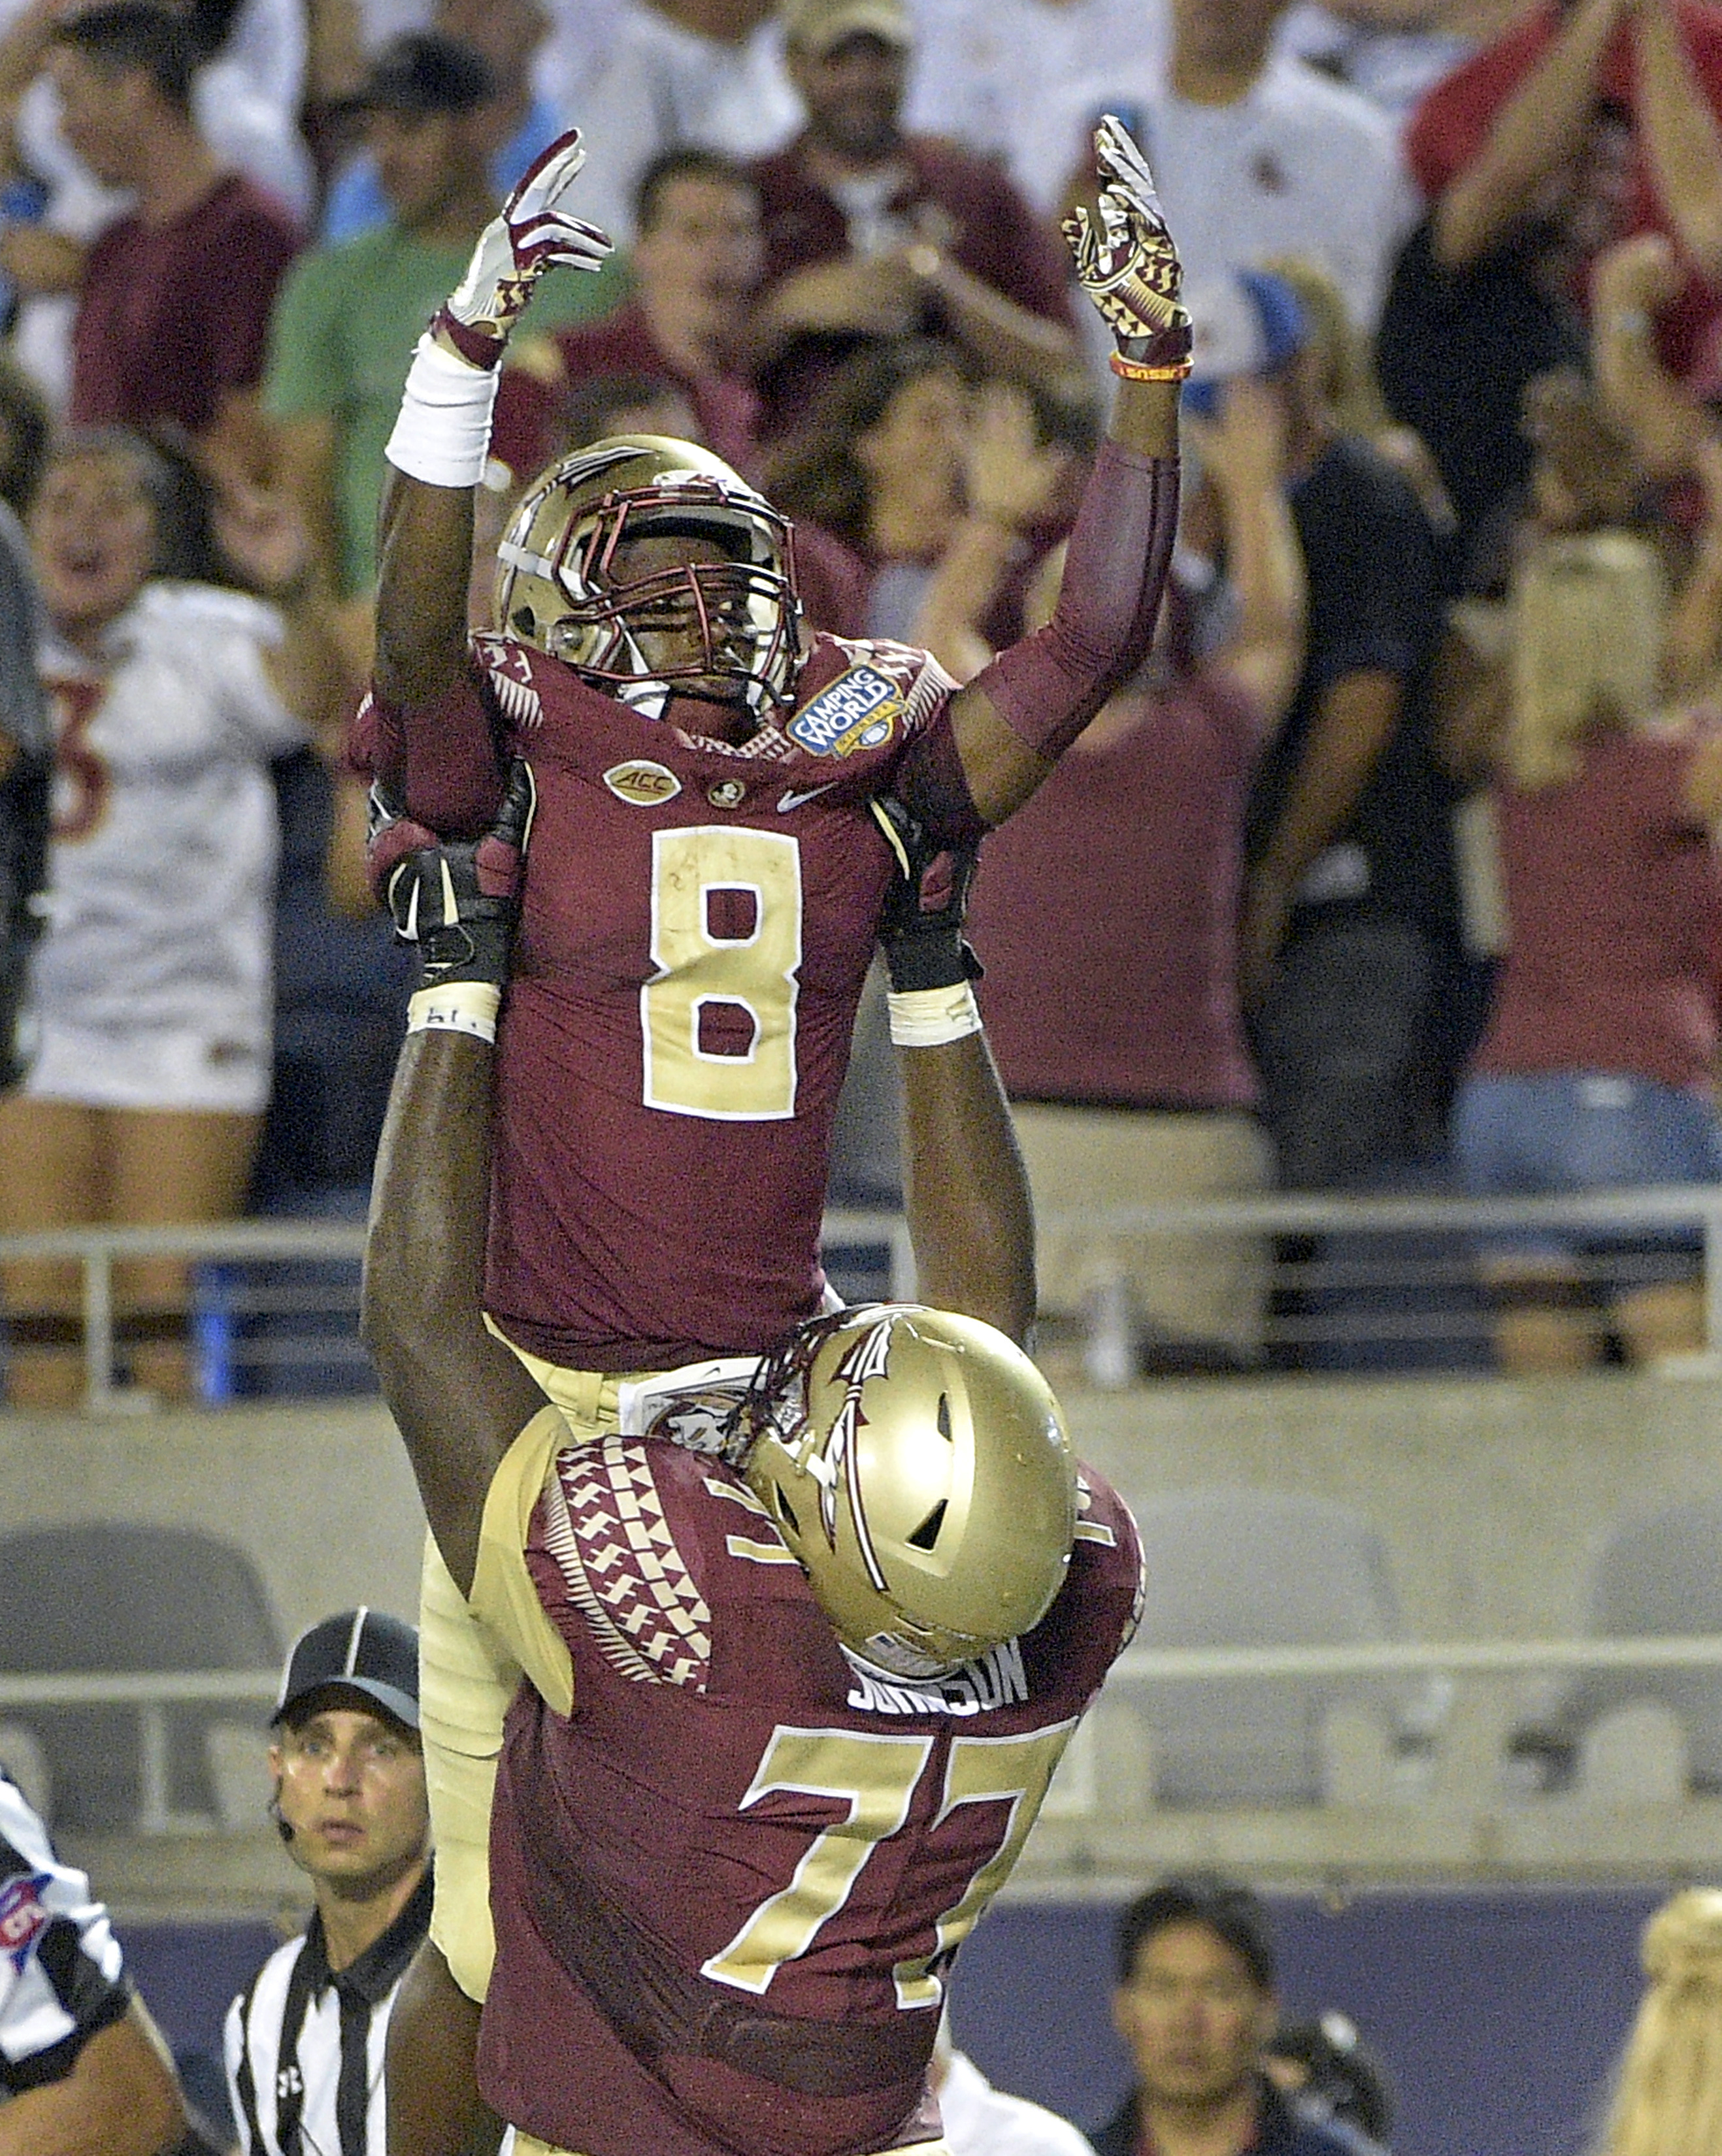 Florida State offensive lineman Roderick Johnson (77) lifts up wide receiver Kermit Whitfield (8) after Whitfield scored a touchdown against Mississippi during the second half of an NCAA college football game, Monday, Sept. 5, 2016, in Orlando, Fla. (AP P